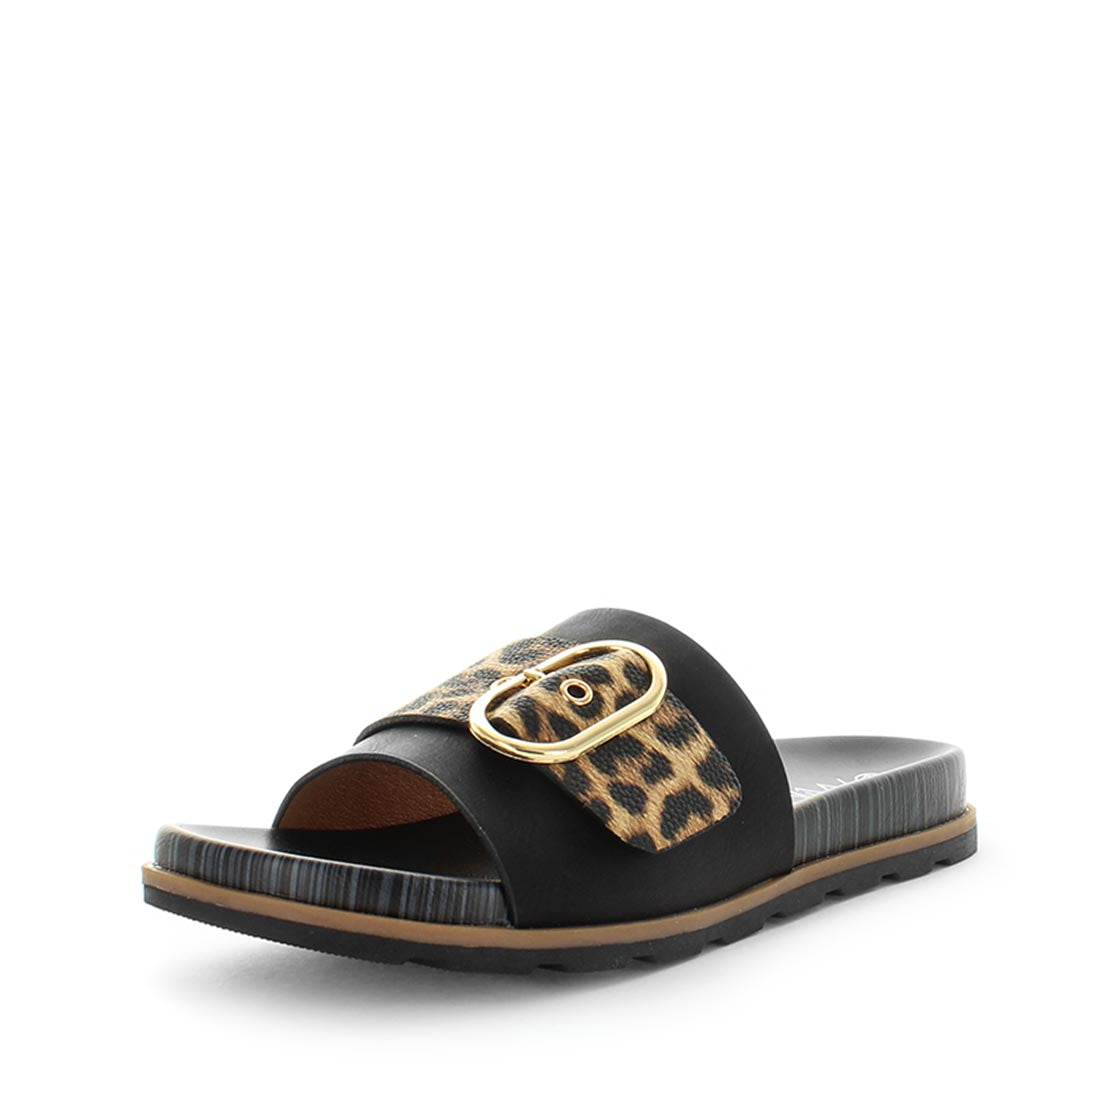 SAMOA by WILDE - iShoes - What's New, What's New: Women's New Arrivals, Women's Shoes, Women's Shoes: Sandals - FOOTWEAR-FOOTWEAR